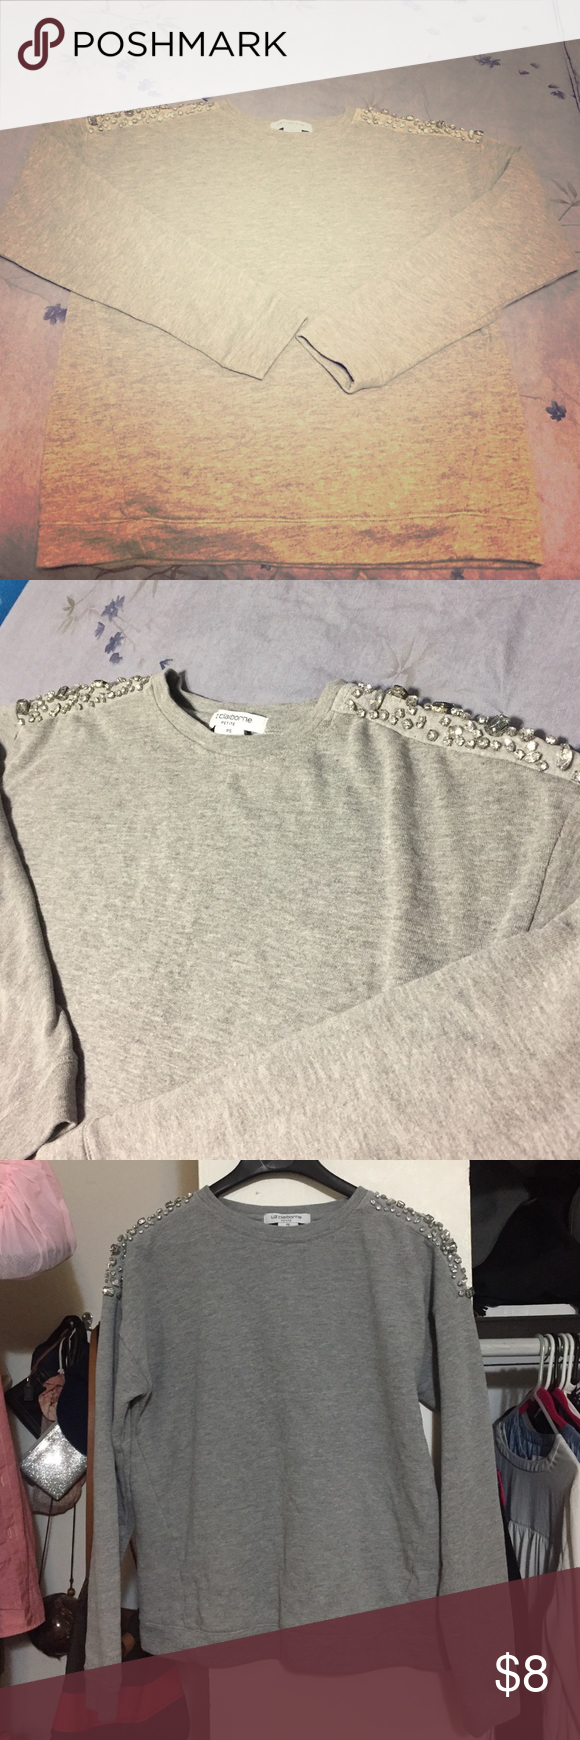 Liz Claiborne sweater Gray casual/dressy Liz Claiborne swear with jewels on shoulder. It's a petite small. Liz Claiborne Sweaters Crew & Scoop Necks